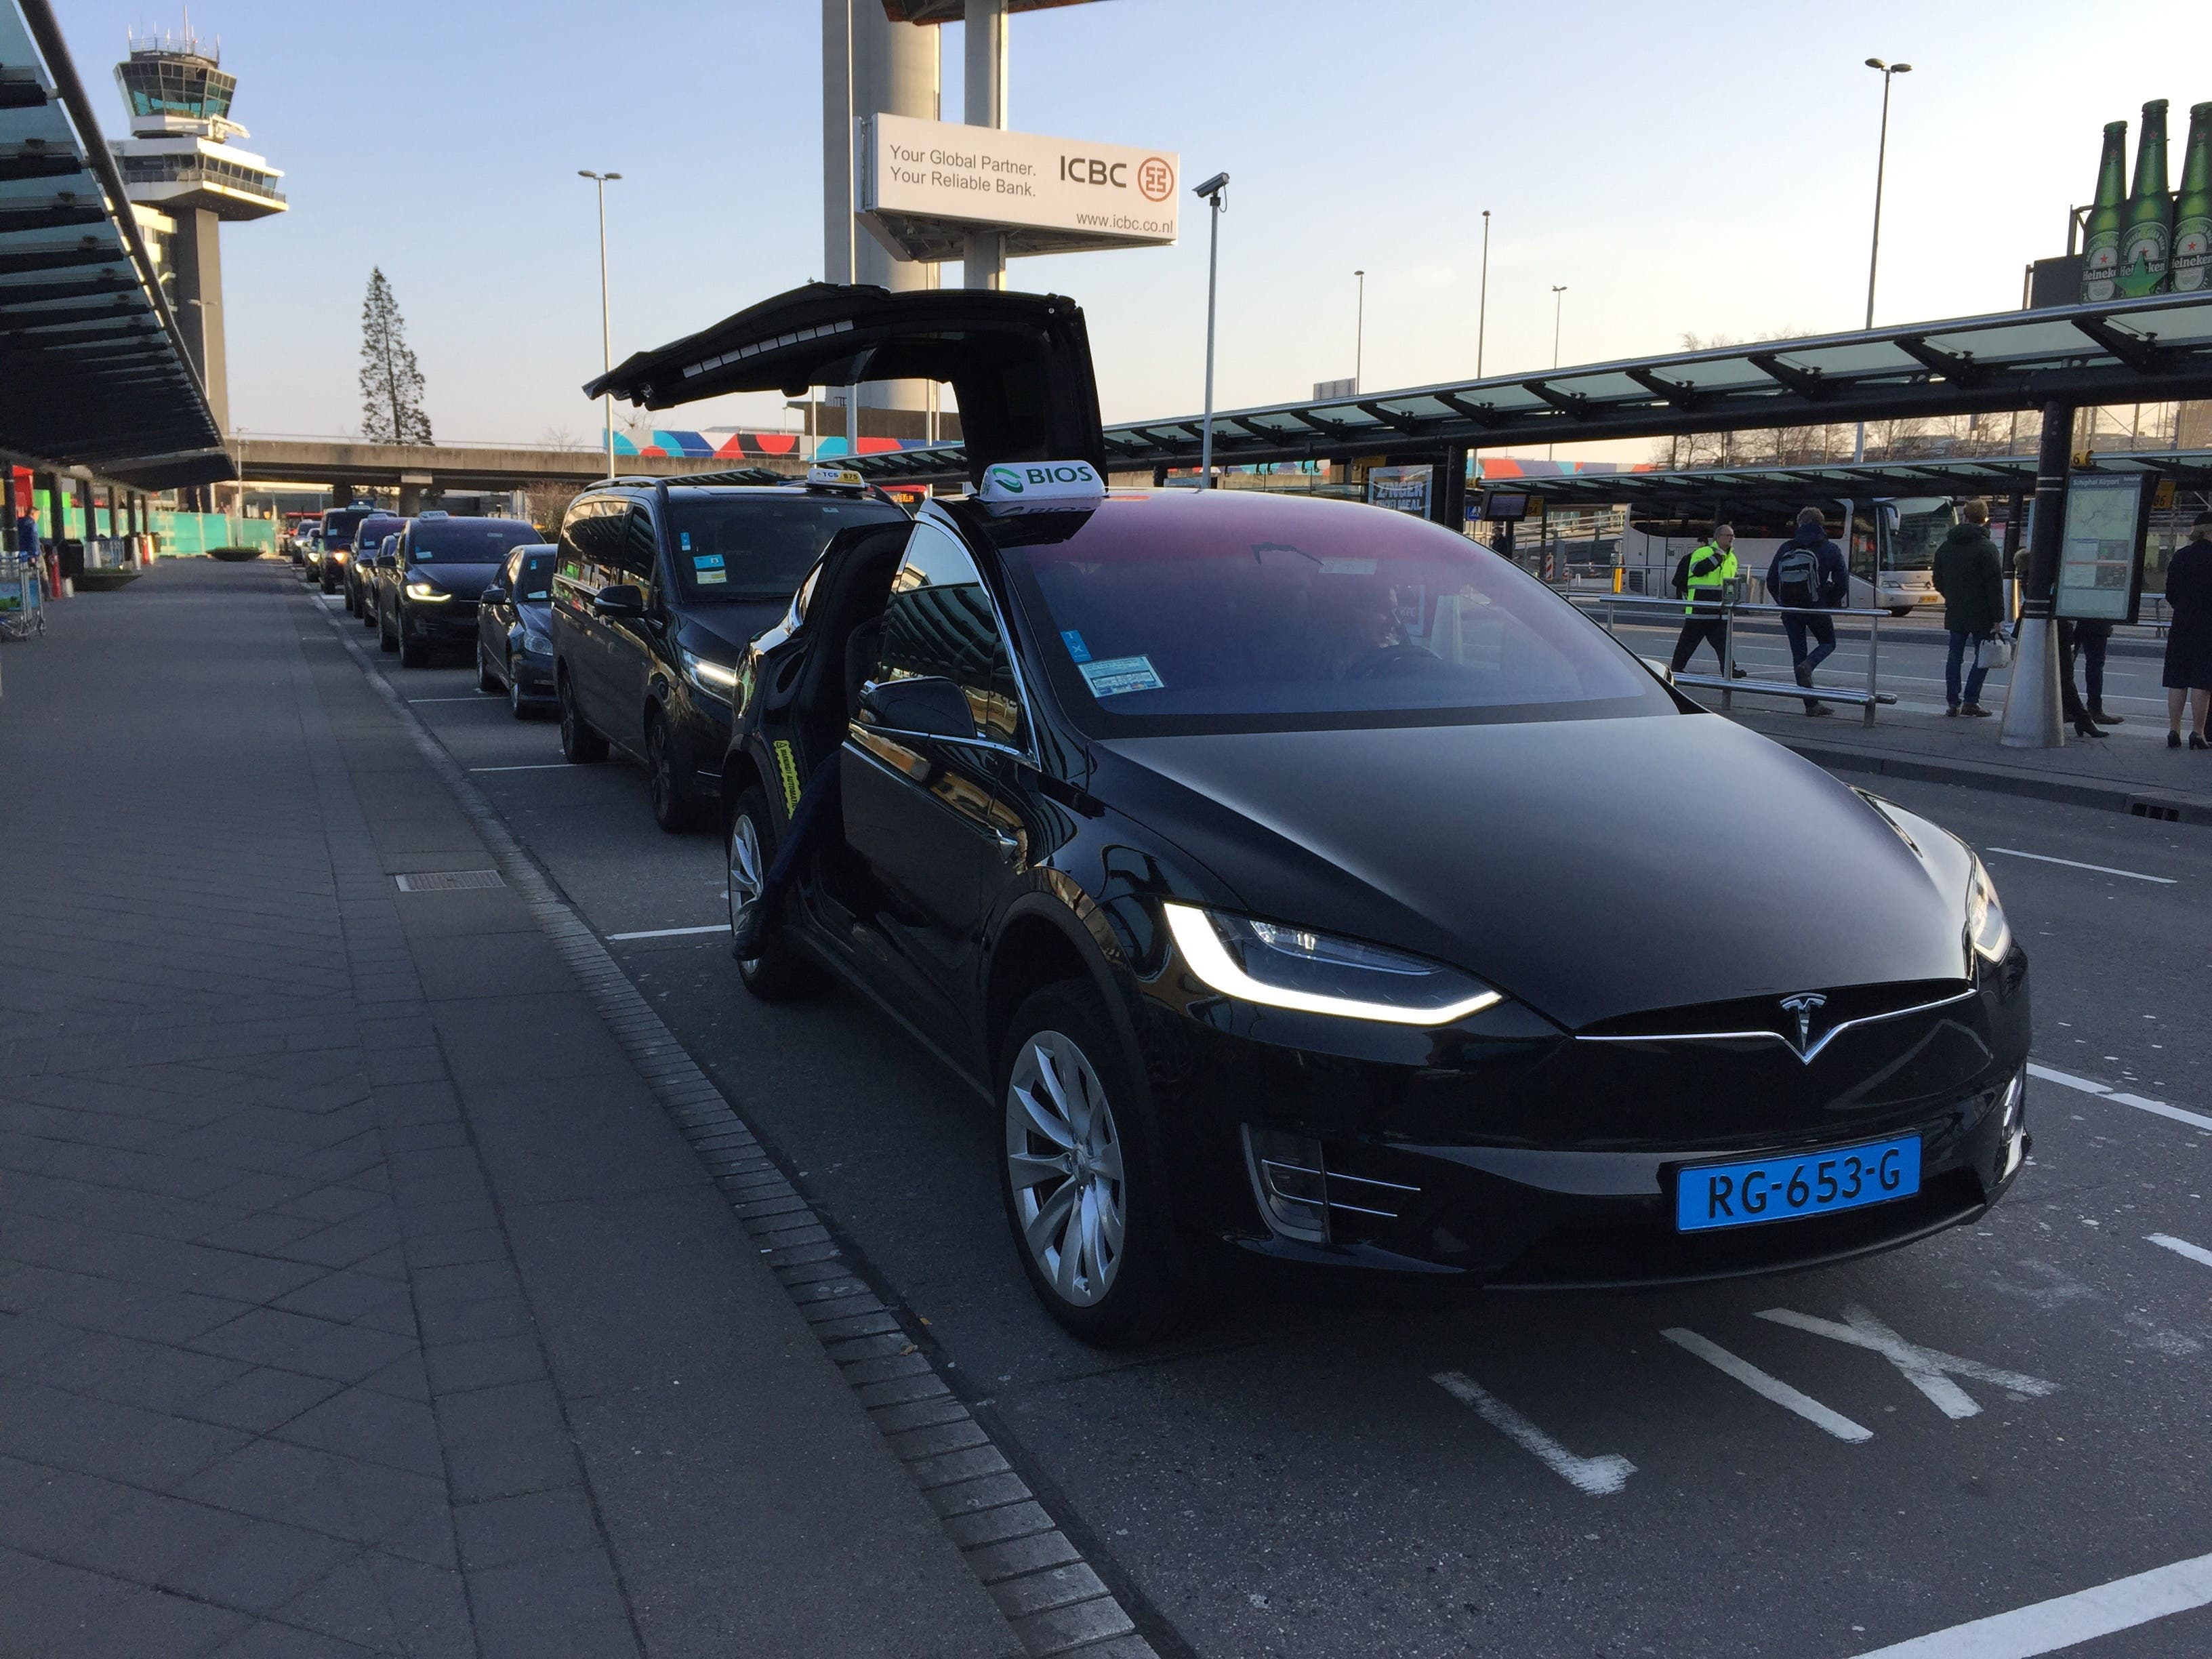 In 2018 24 024 Fully Electric Vehicles Were Sold The Netherlands Three Times As Many 2017 According To Figures From Industry Ociations Rai